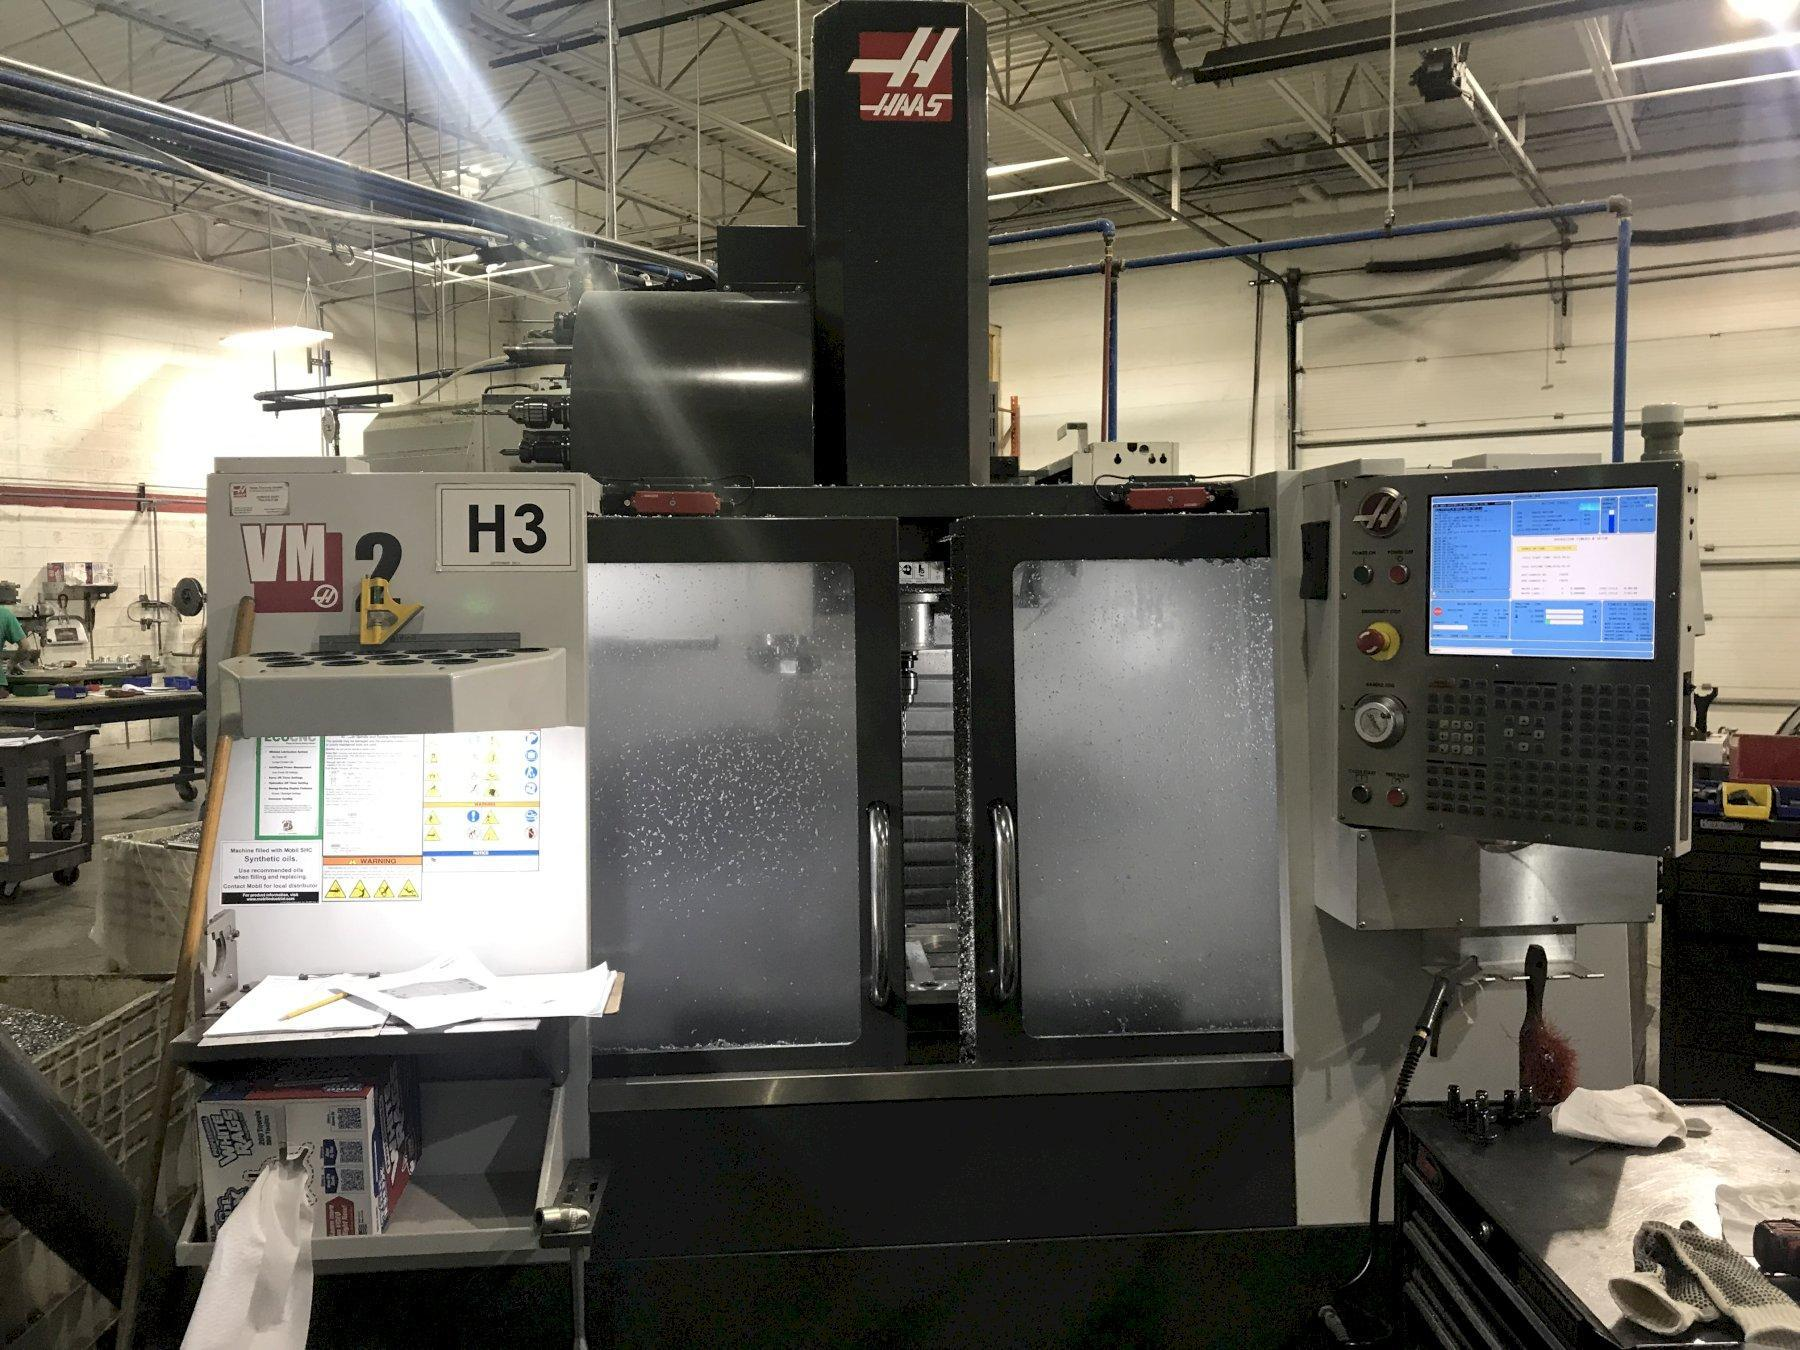 Haas VM2 (Mold Maker) CNC Vertical Machining Center